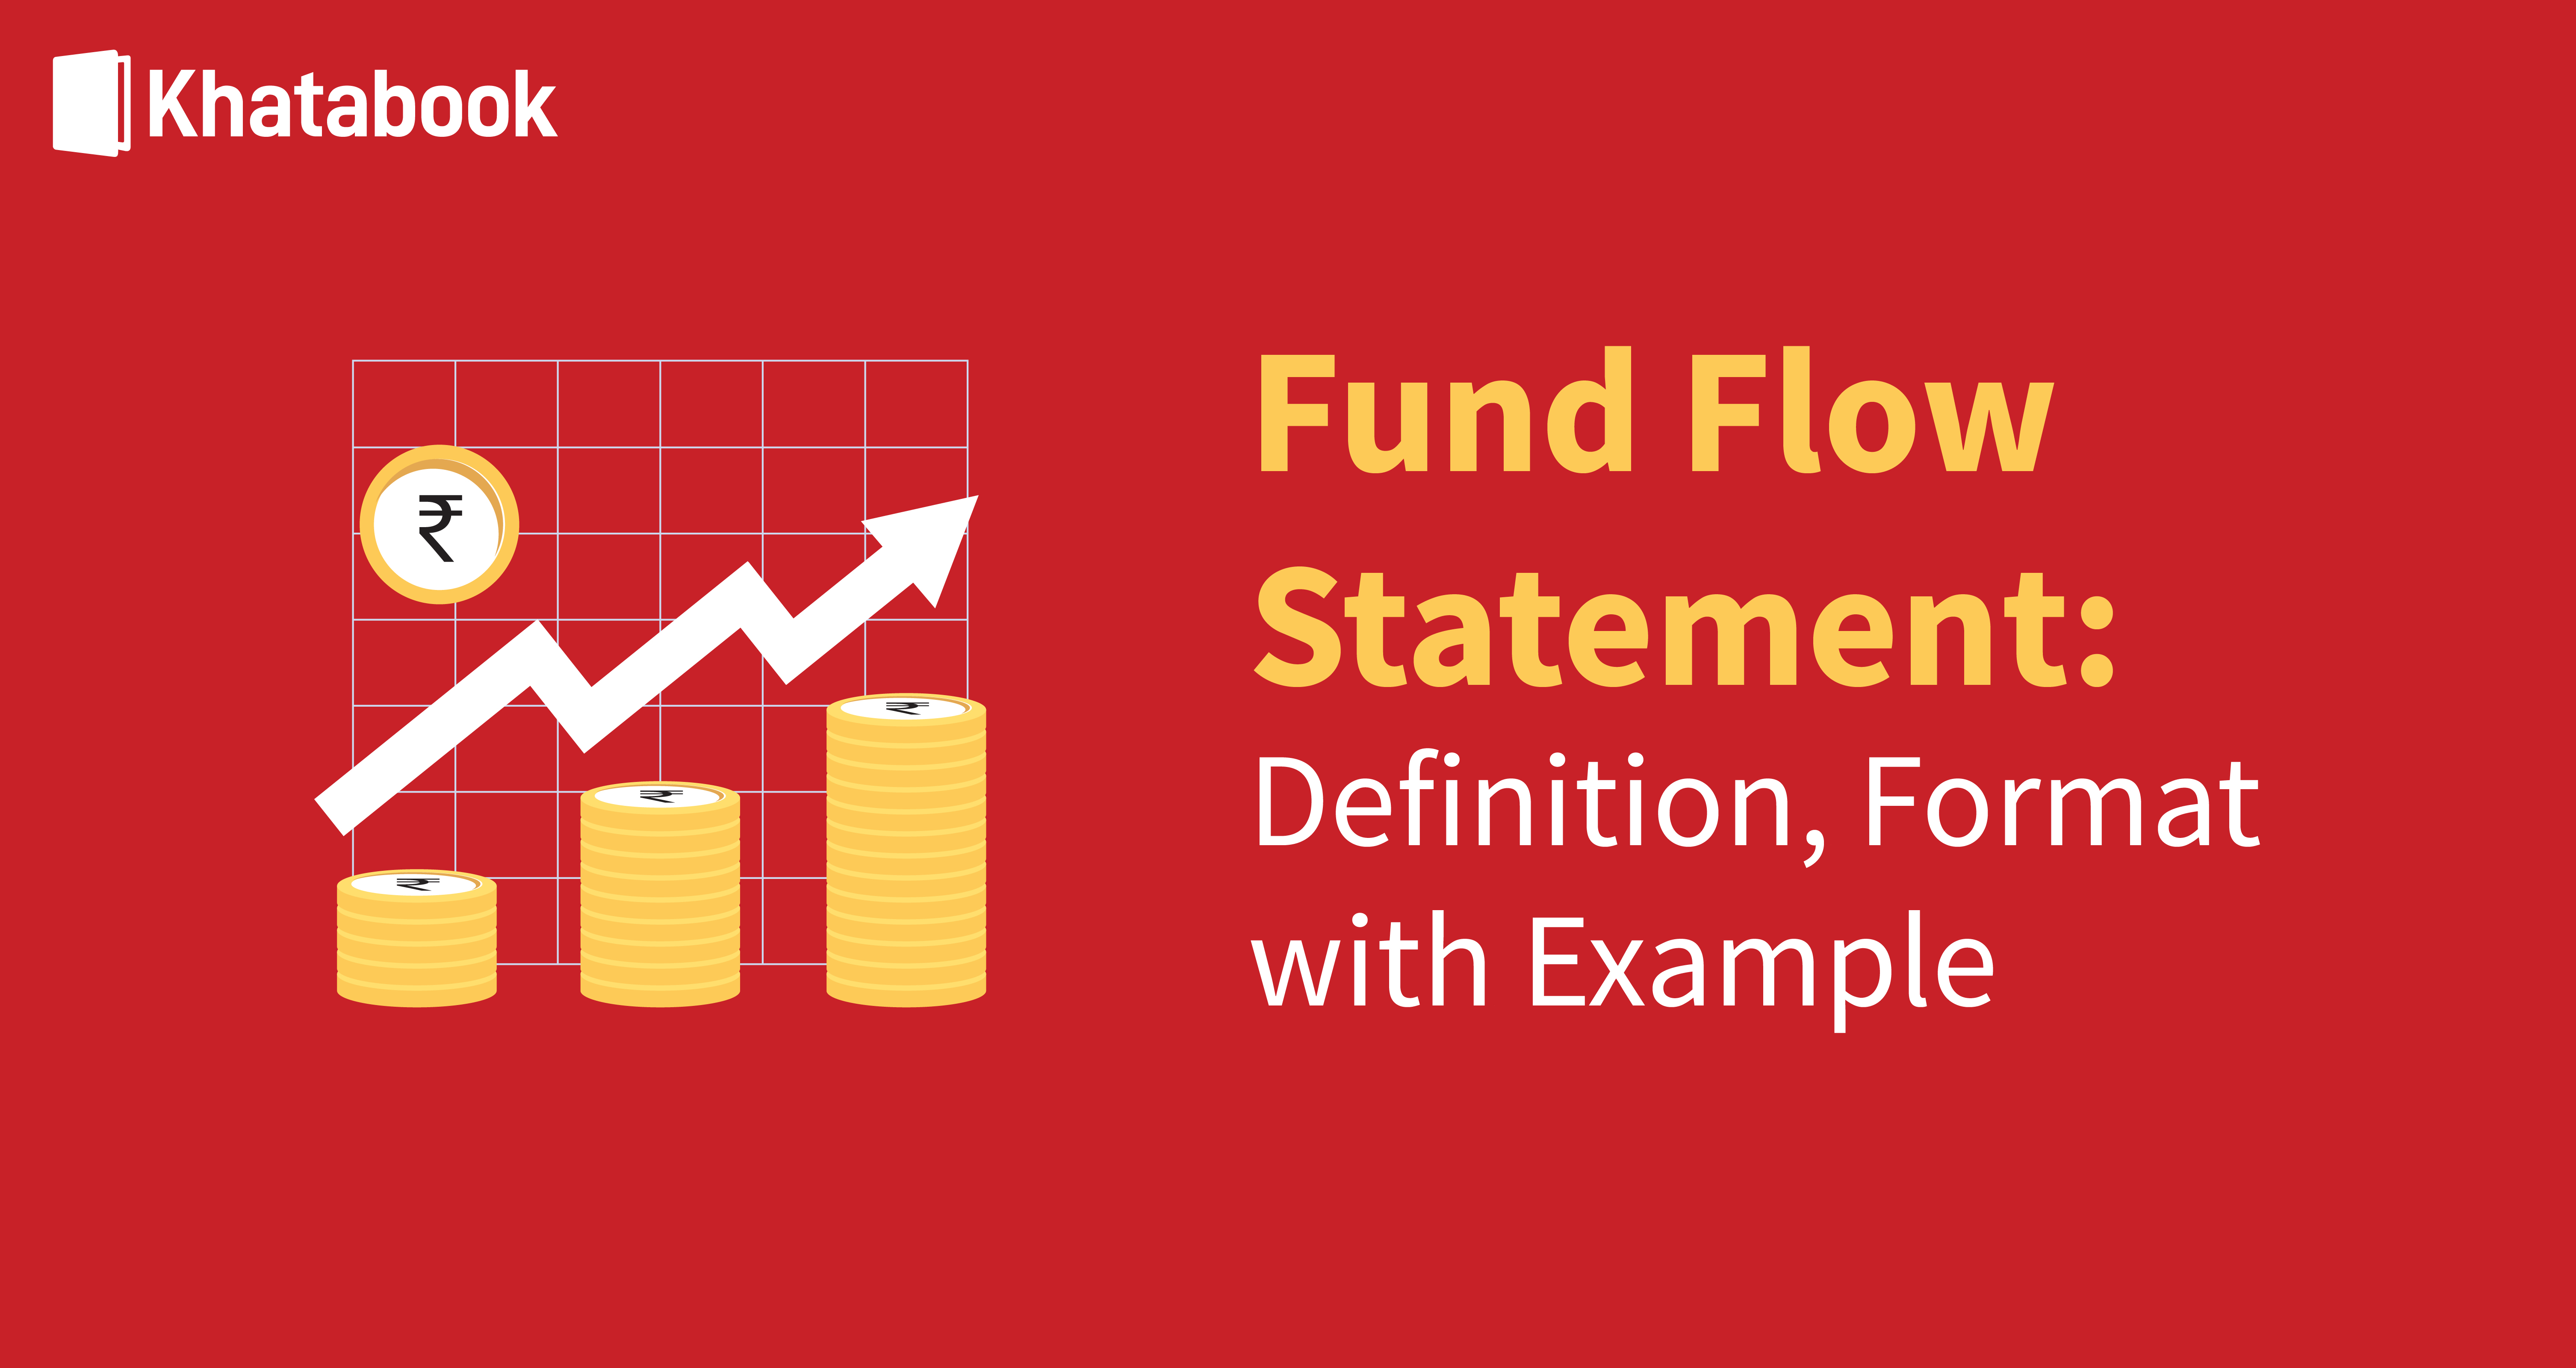 Fund Flow Statement - Meaning, Format And Examples